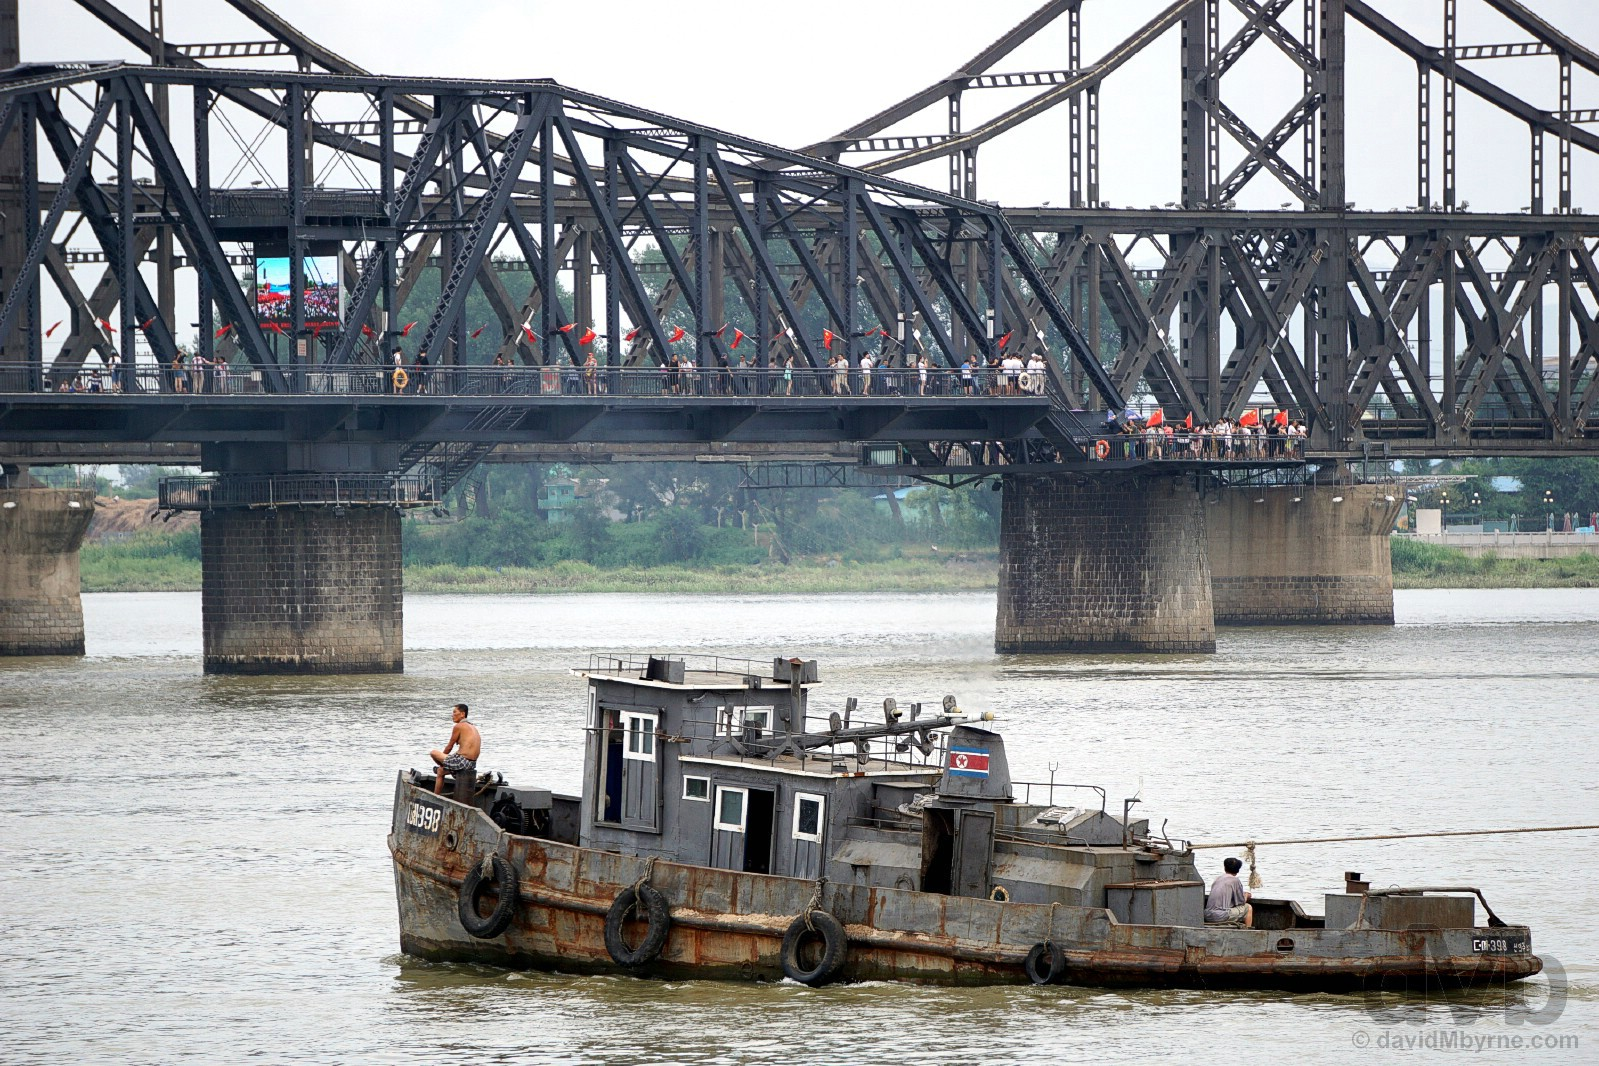 A North Korean-registered tug boat plies the Yalu River with the Broken Bridge in the background as seen from Dandong, Liaoning province, China. August 13, 2017.